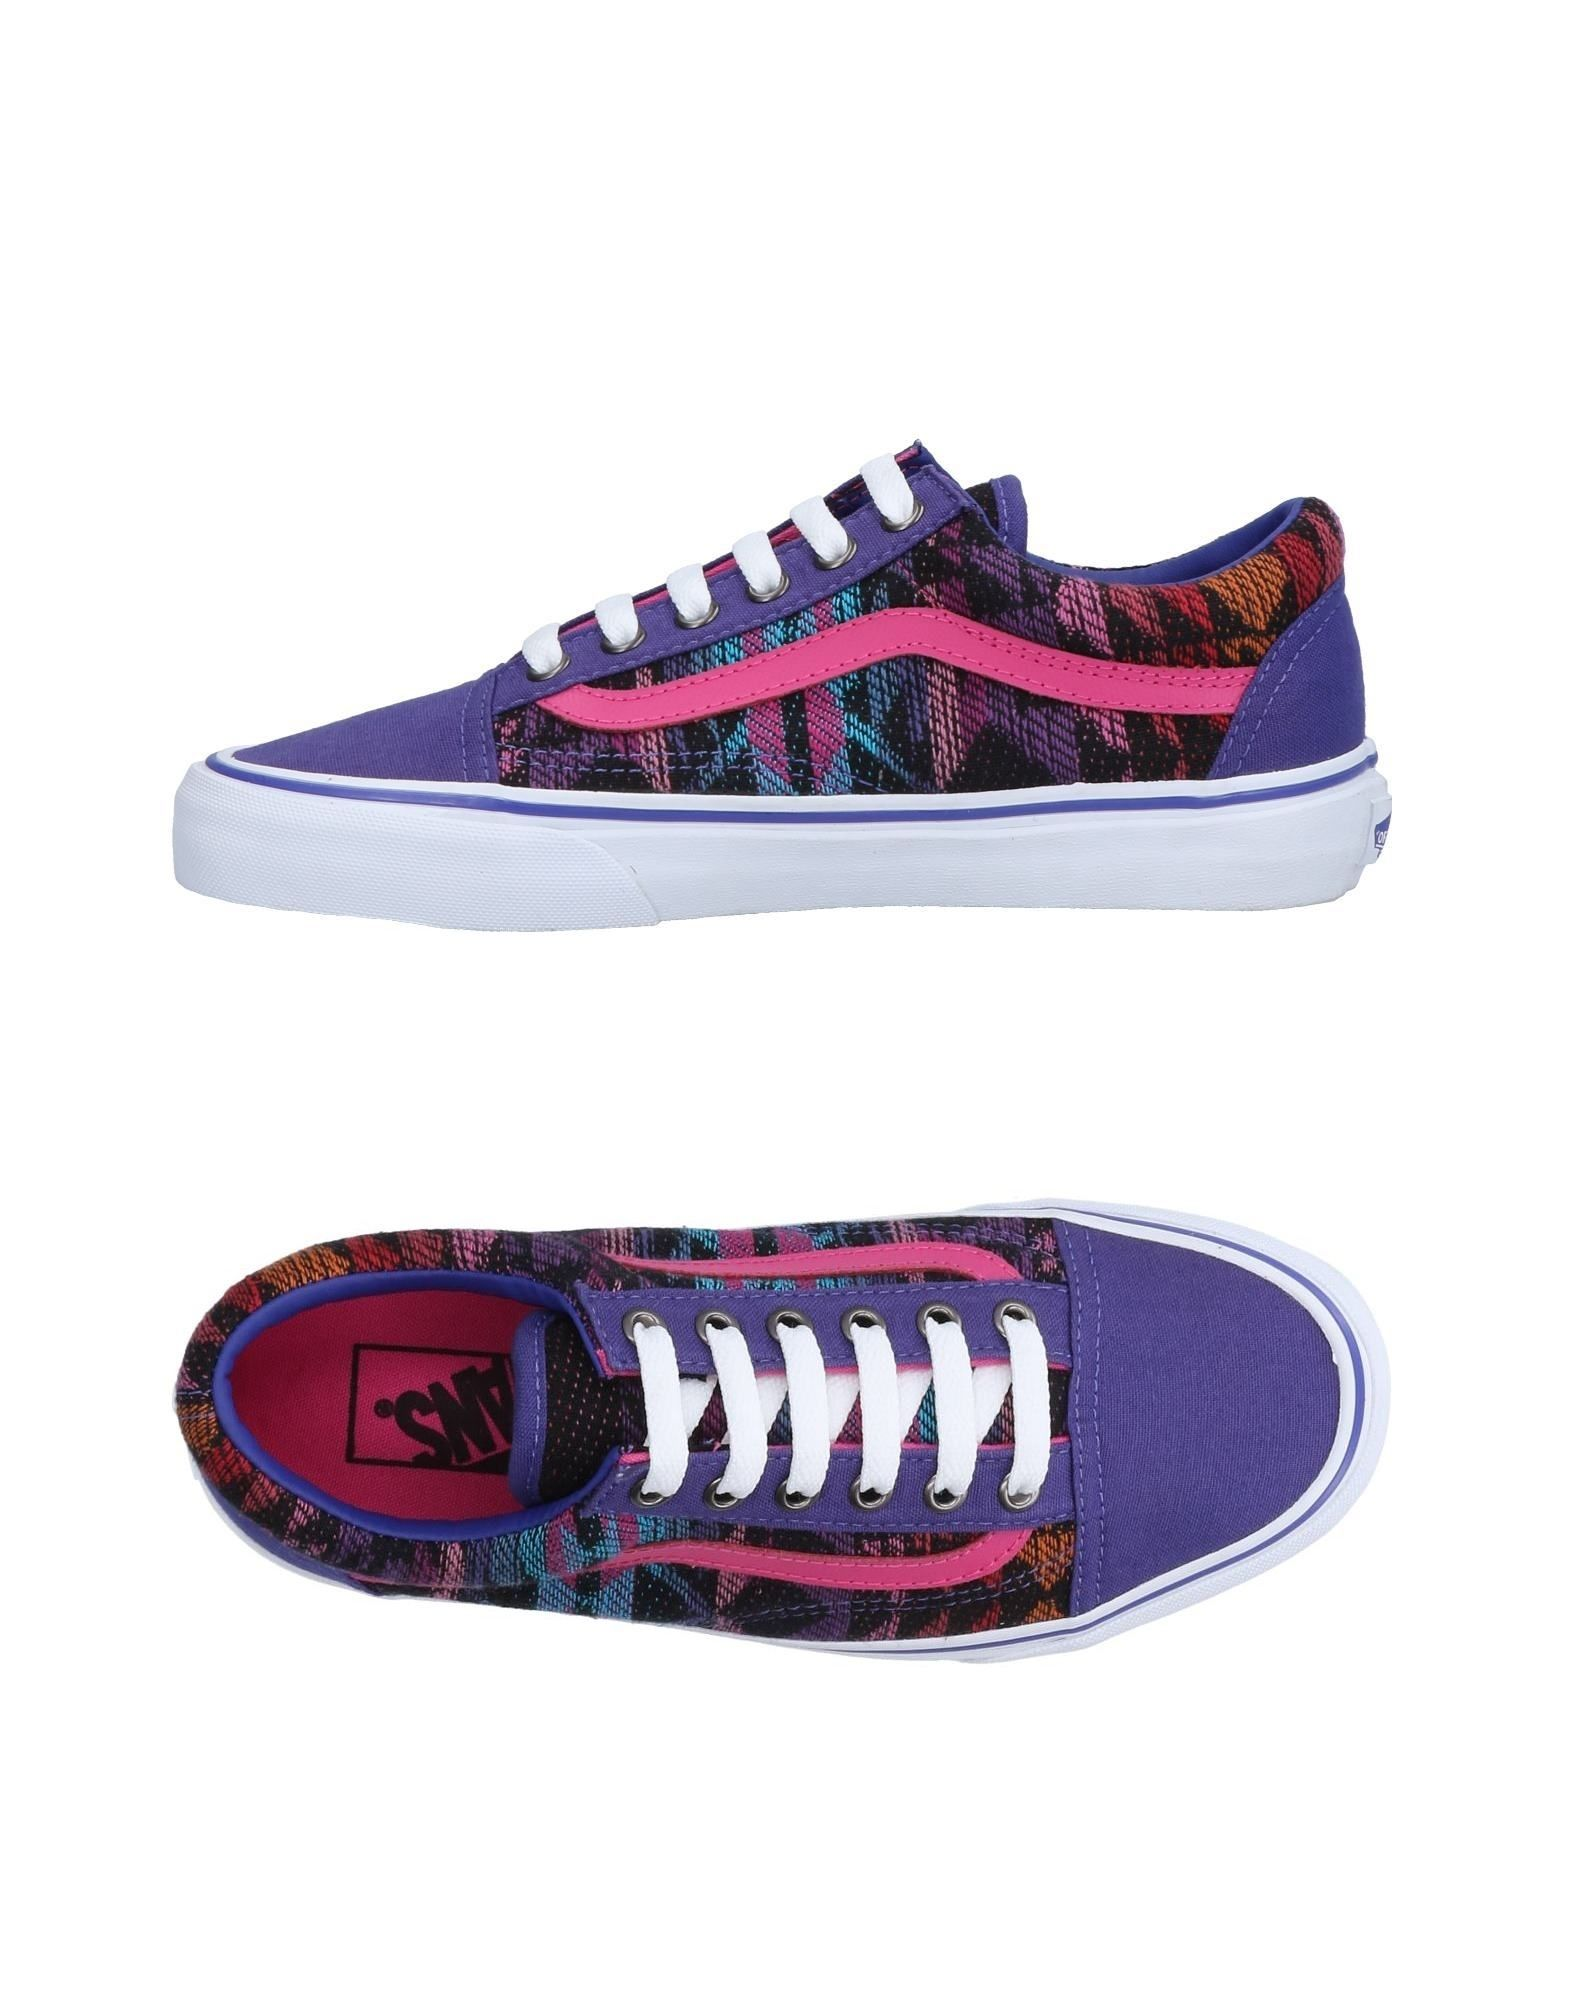 A buon mercato Sneakers Vans Donna - 11510903GQ